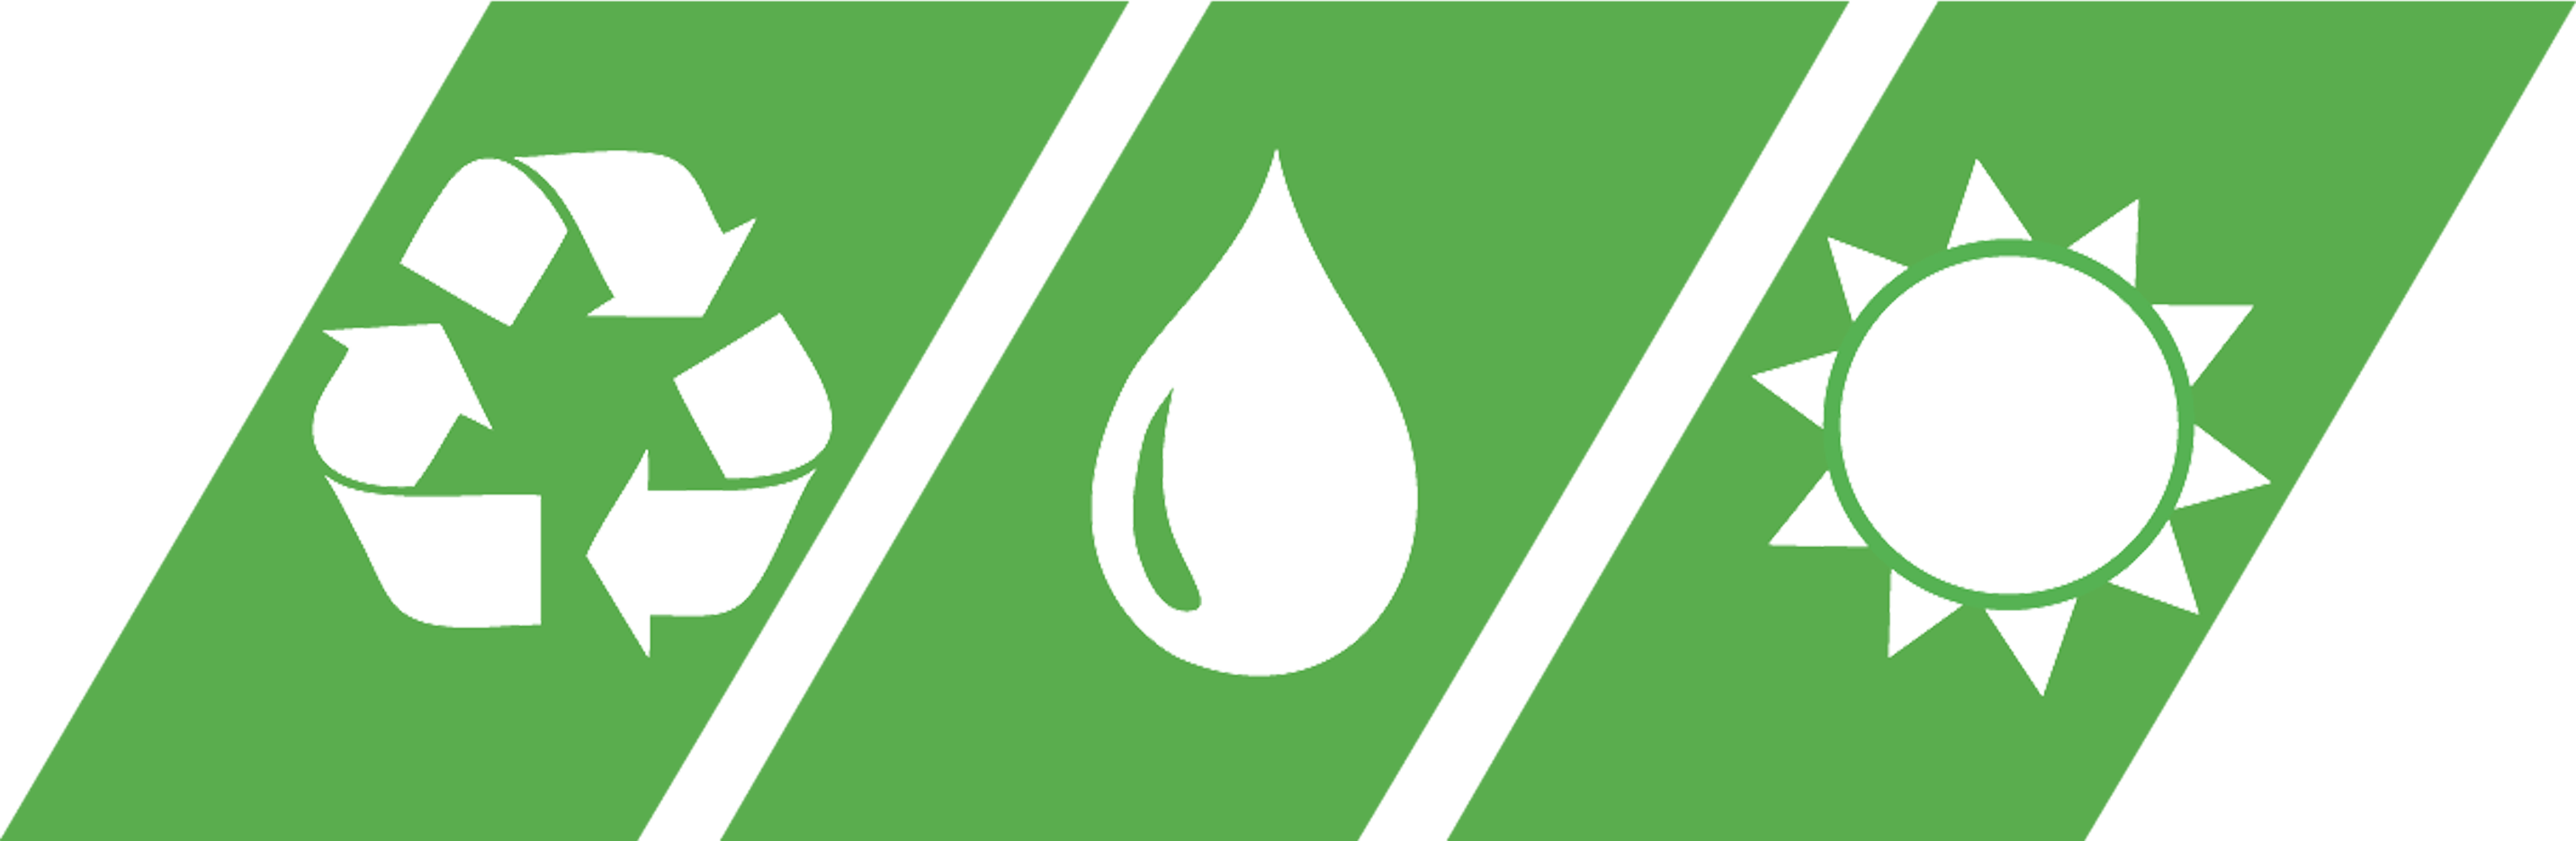 Commission of the Environment & Sustainability logo